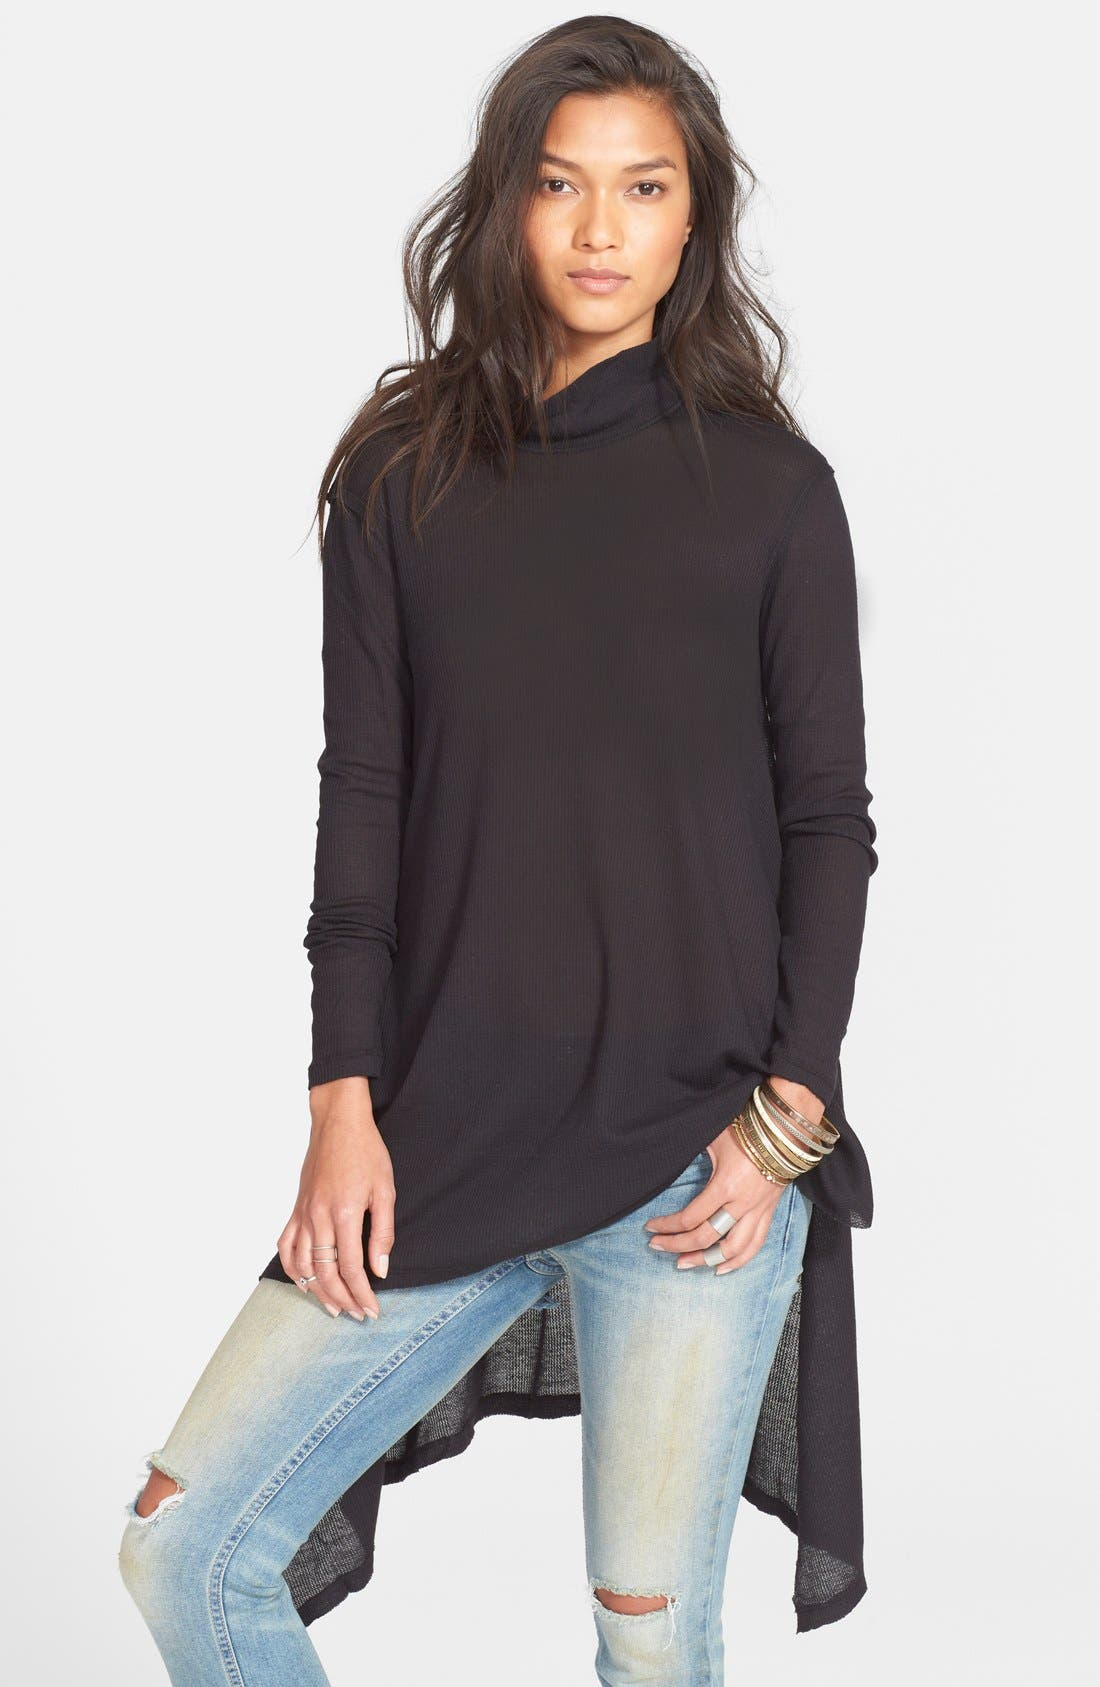 Alternate Image 1 Selected - Free People Asymmetrical Tunic Top